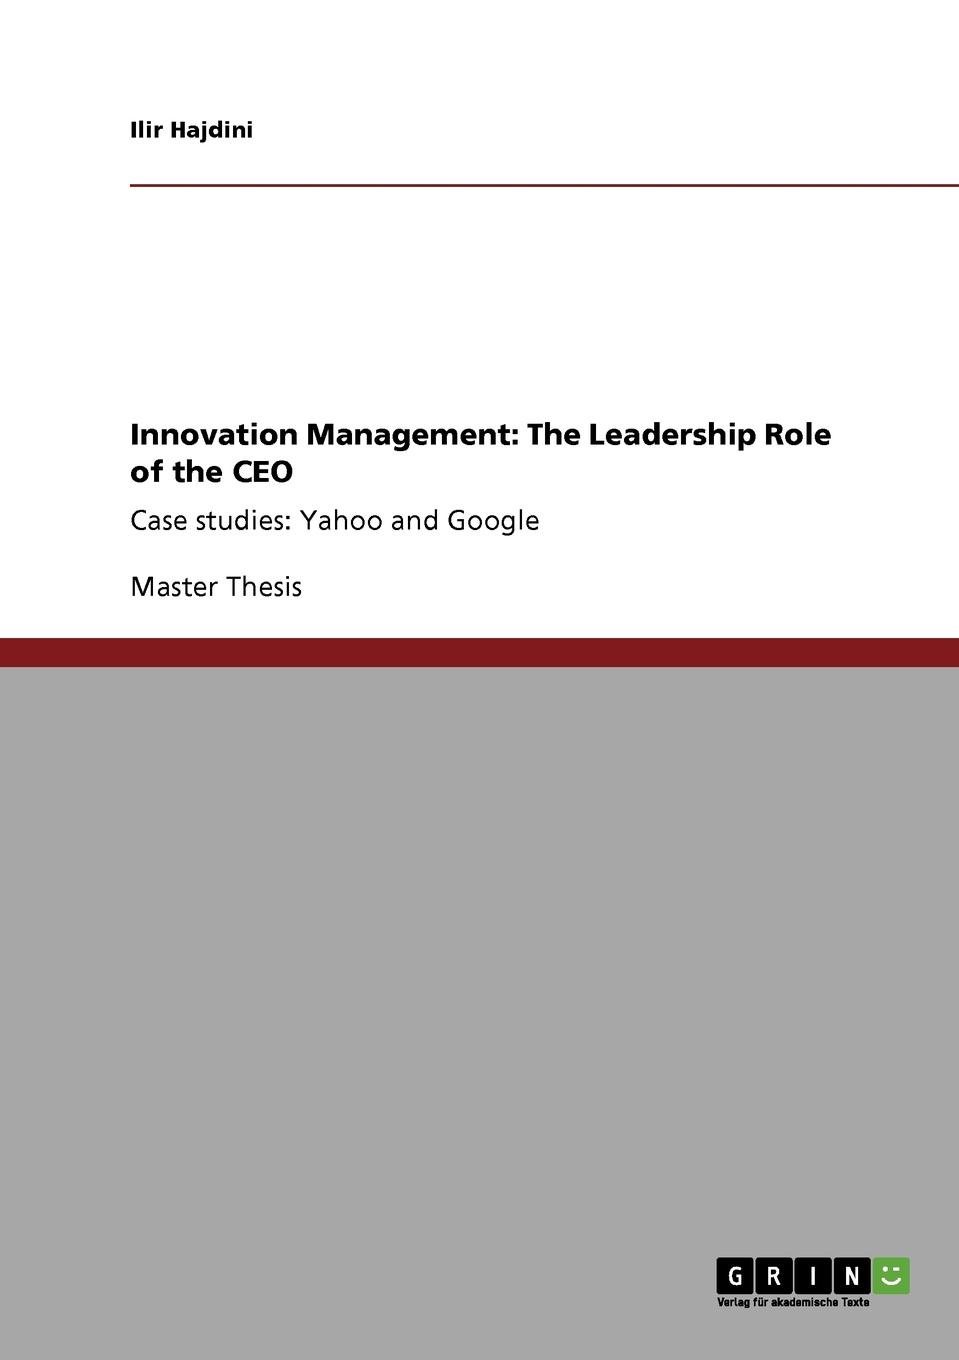 Ilir Hajdini Innovation Management. The Leadership Role of the CEO цены